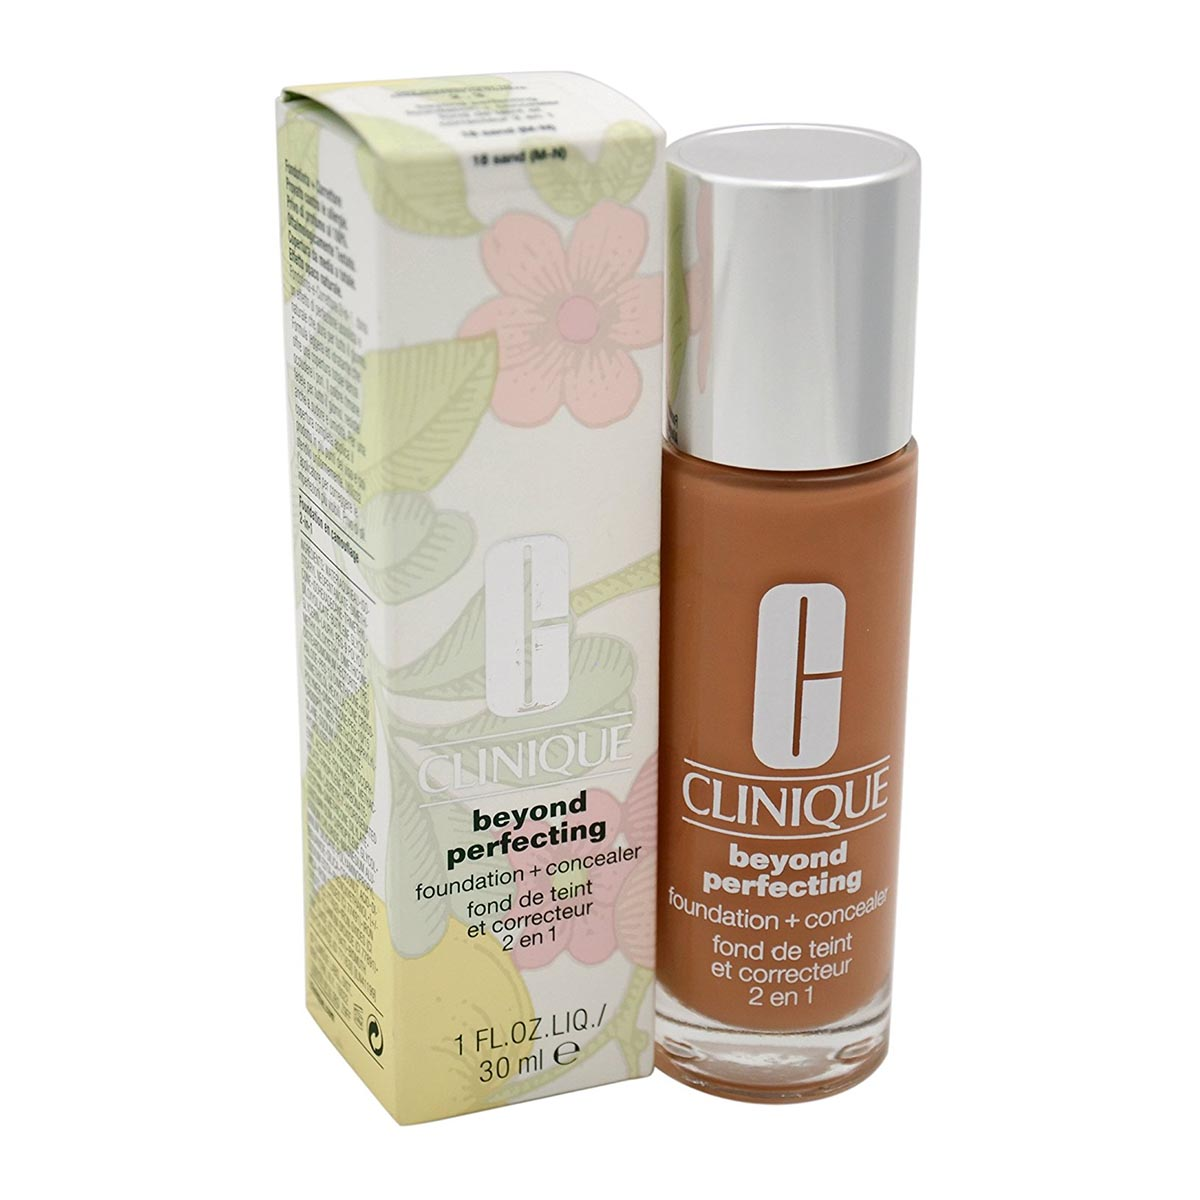 Clinique beyond perfecting foundation concealer linen